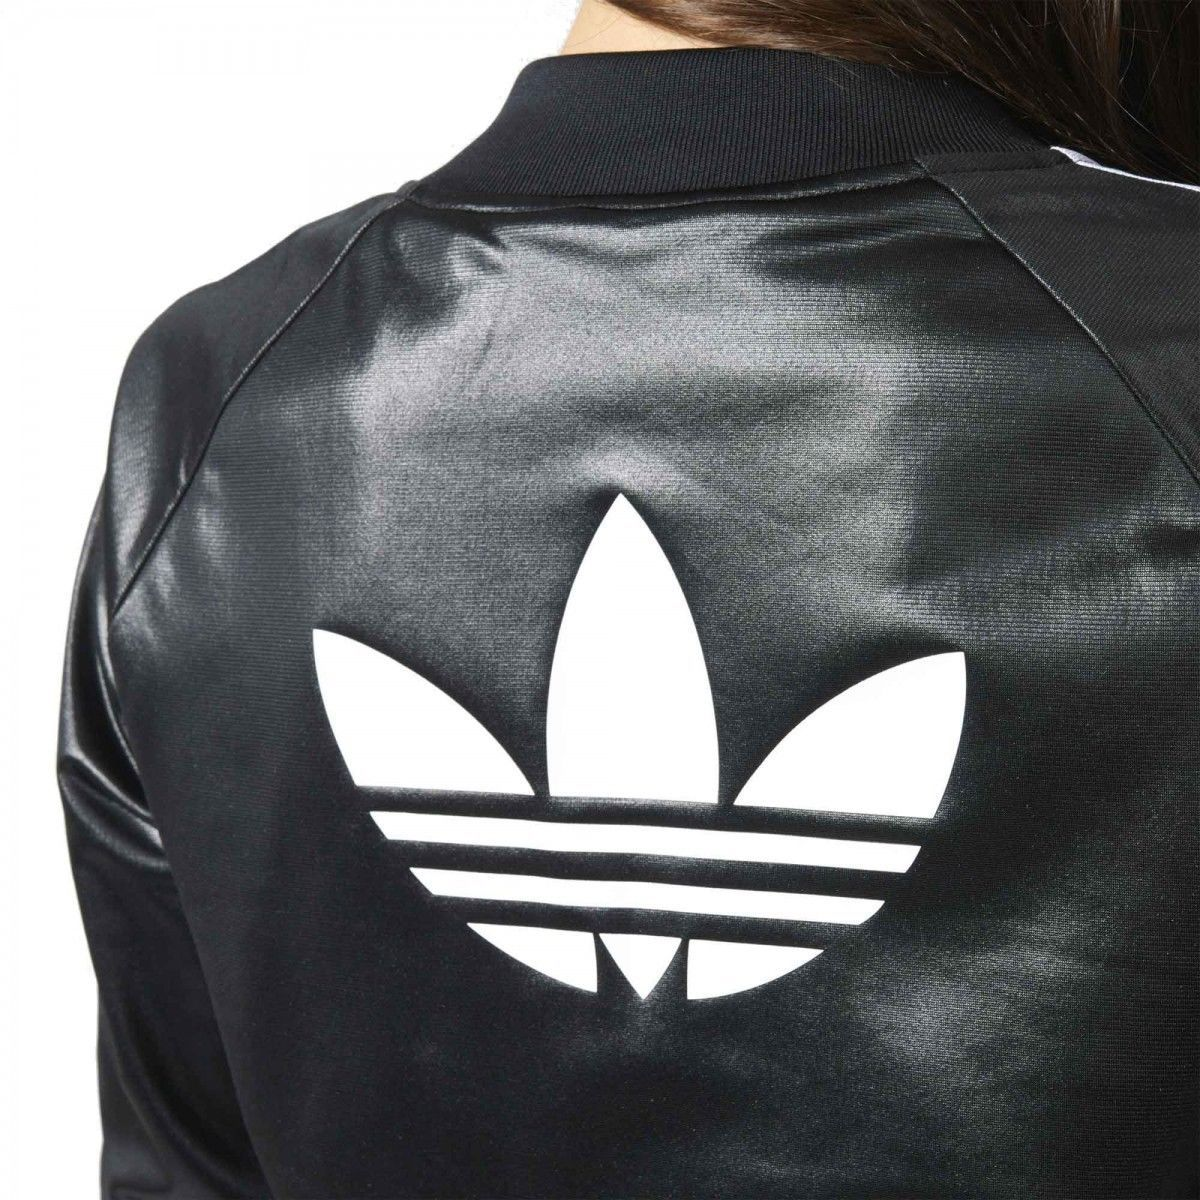 af2f1ed94c051 Supergirl Jacket AY7892. adidas Originals. A true classic. It flashes a big  Trefoil on the back. The modern fit hugs curves for a stylish update to the  ...